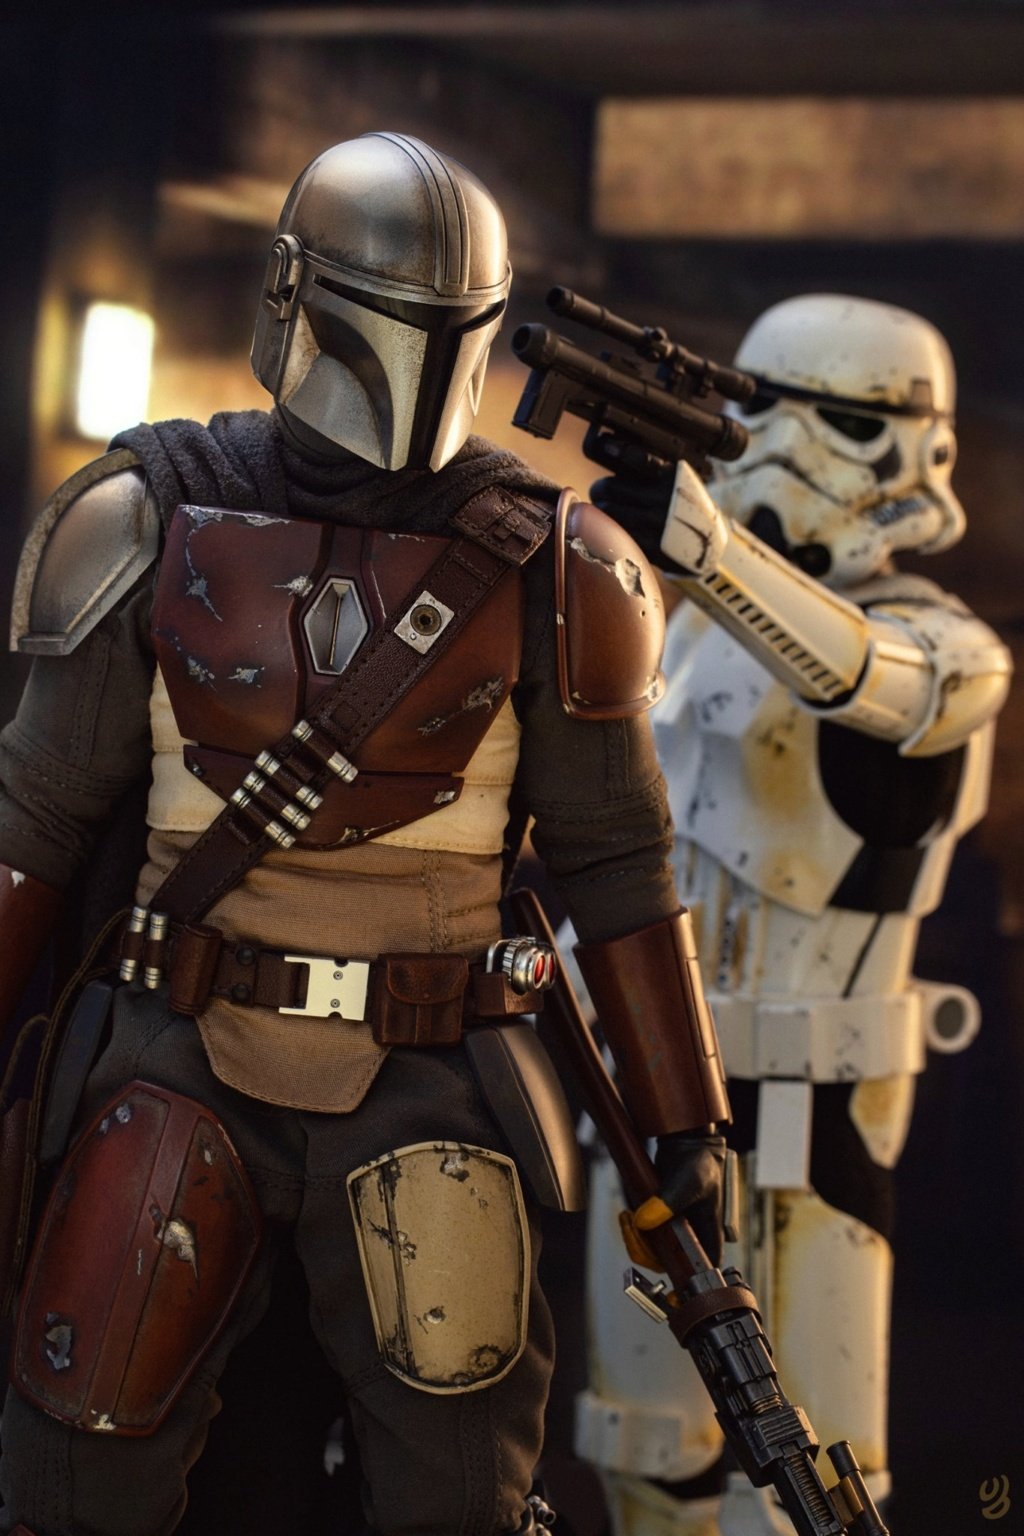 StarWars - NEW PRODUCT: HOT TOYS: THE MANDALORIAN -- THE MANDALORIAN 1/6TH SCALE COLLECTIBLE FIGURE 2605